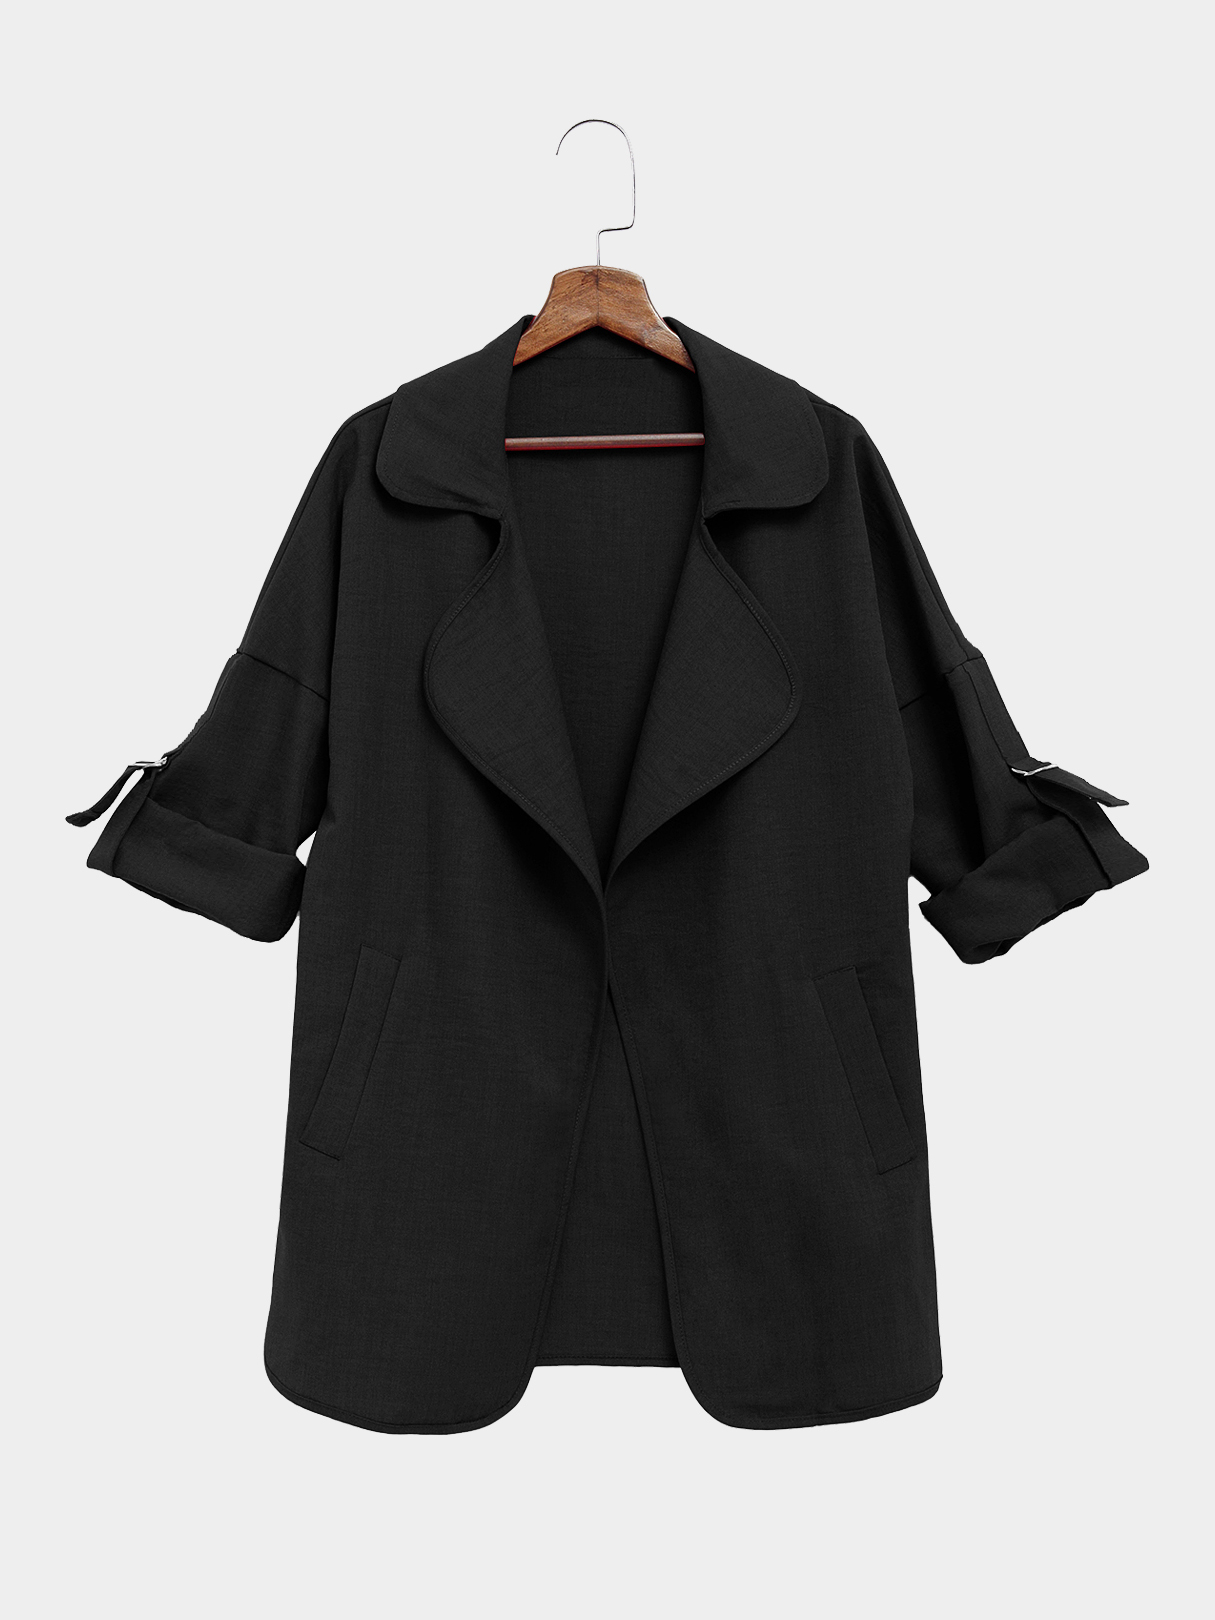 Black Trench Coat With Lapel Collar